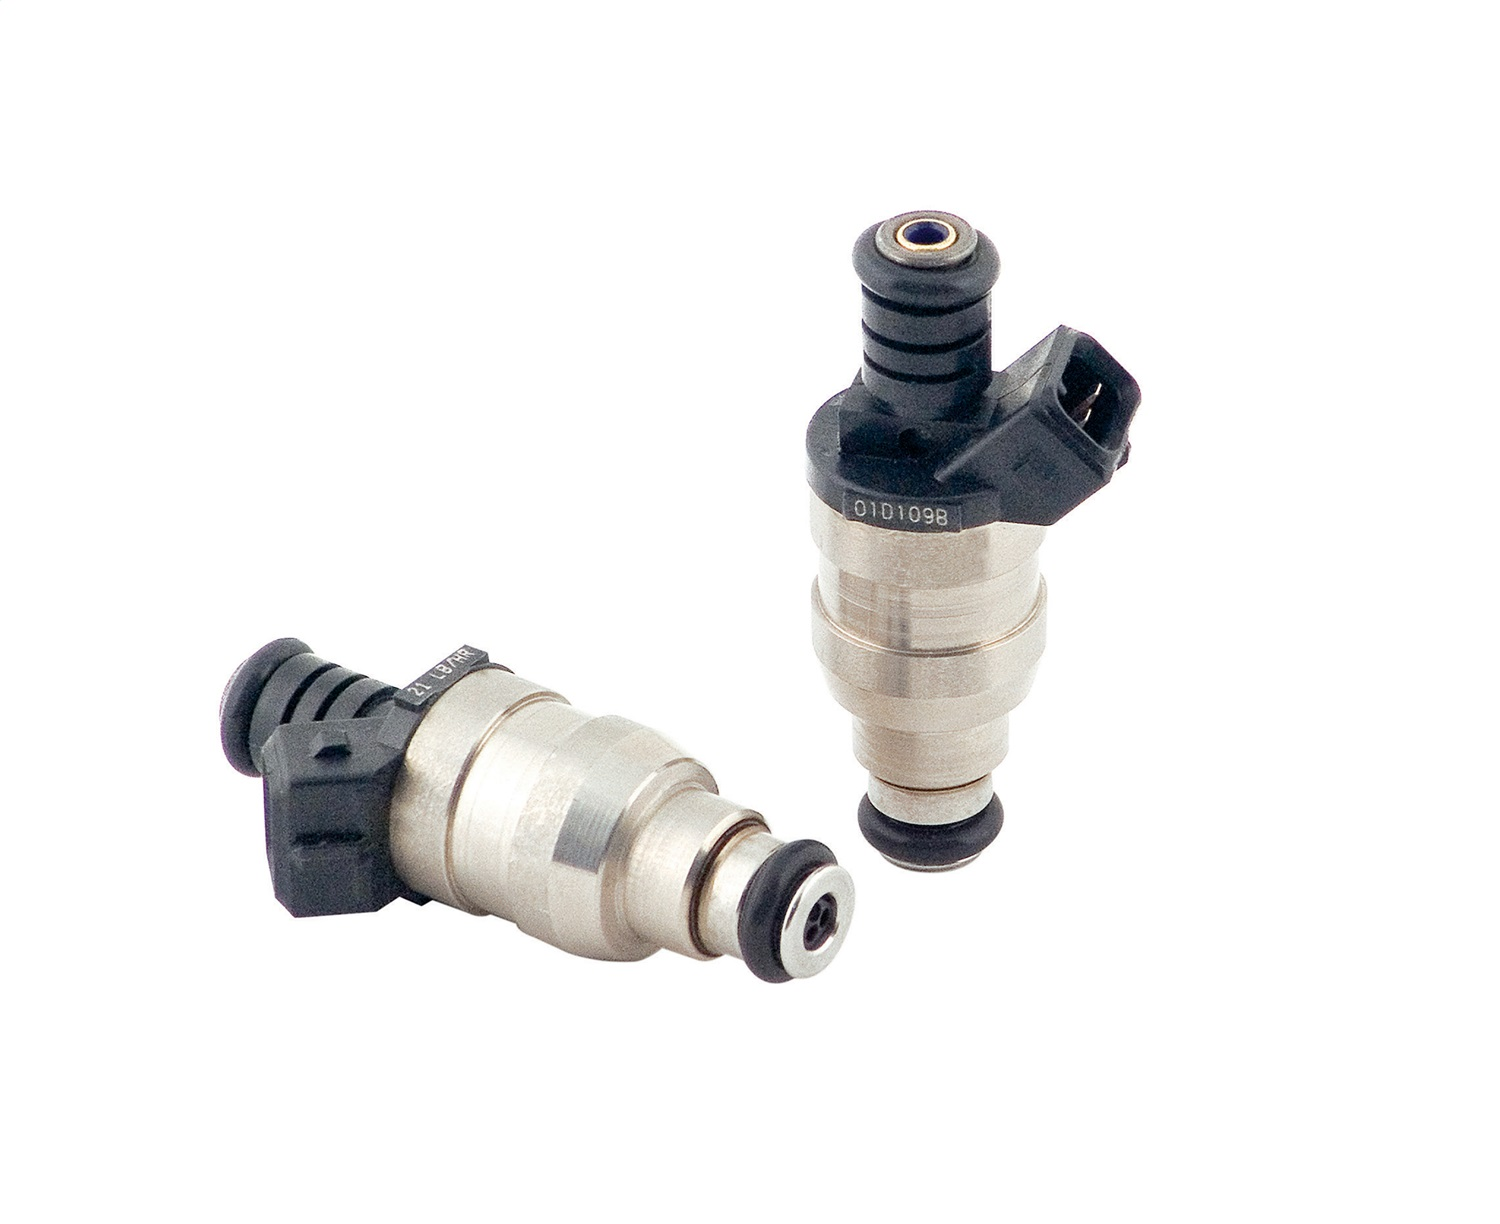 ACCEL 150124 PERF FUEL INJECTOR 24lb each